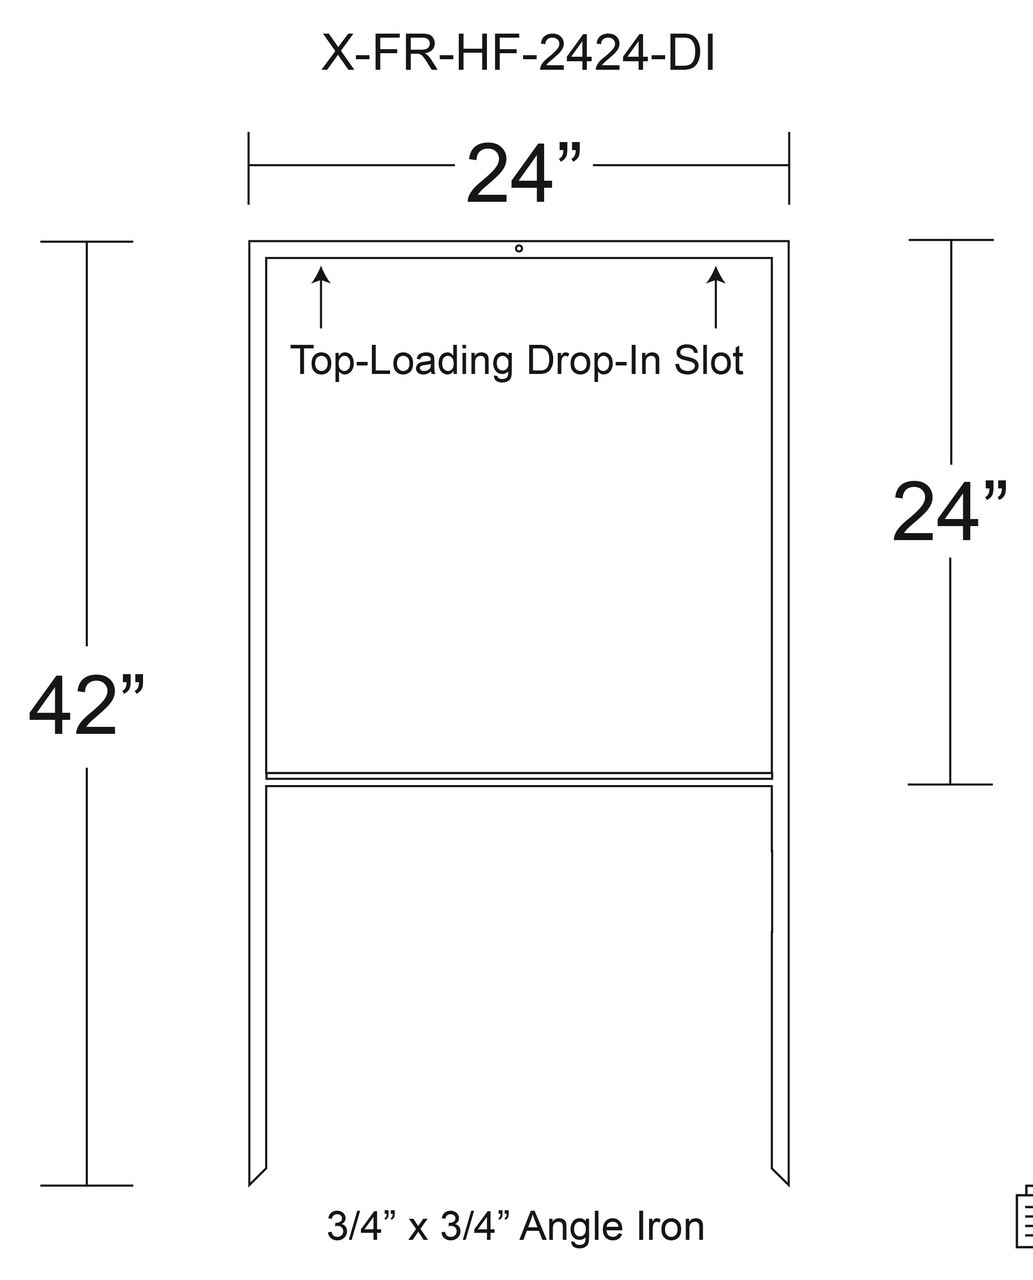 X-FR-2424-DI WITH TOP-LOADING DROP-IN SLOT WITH DIMENSIONS